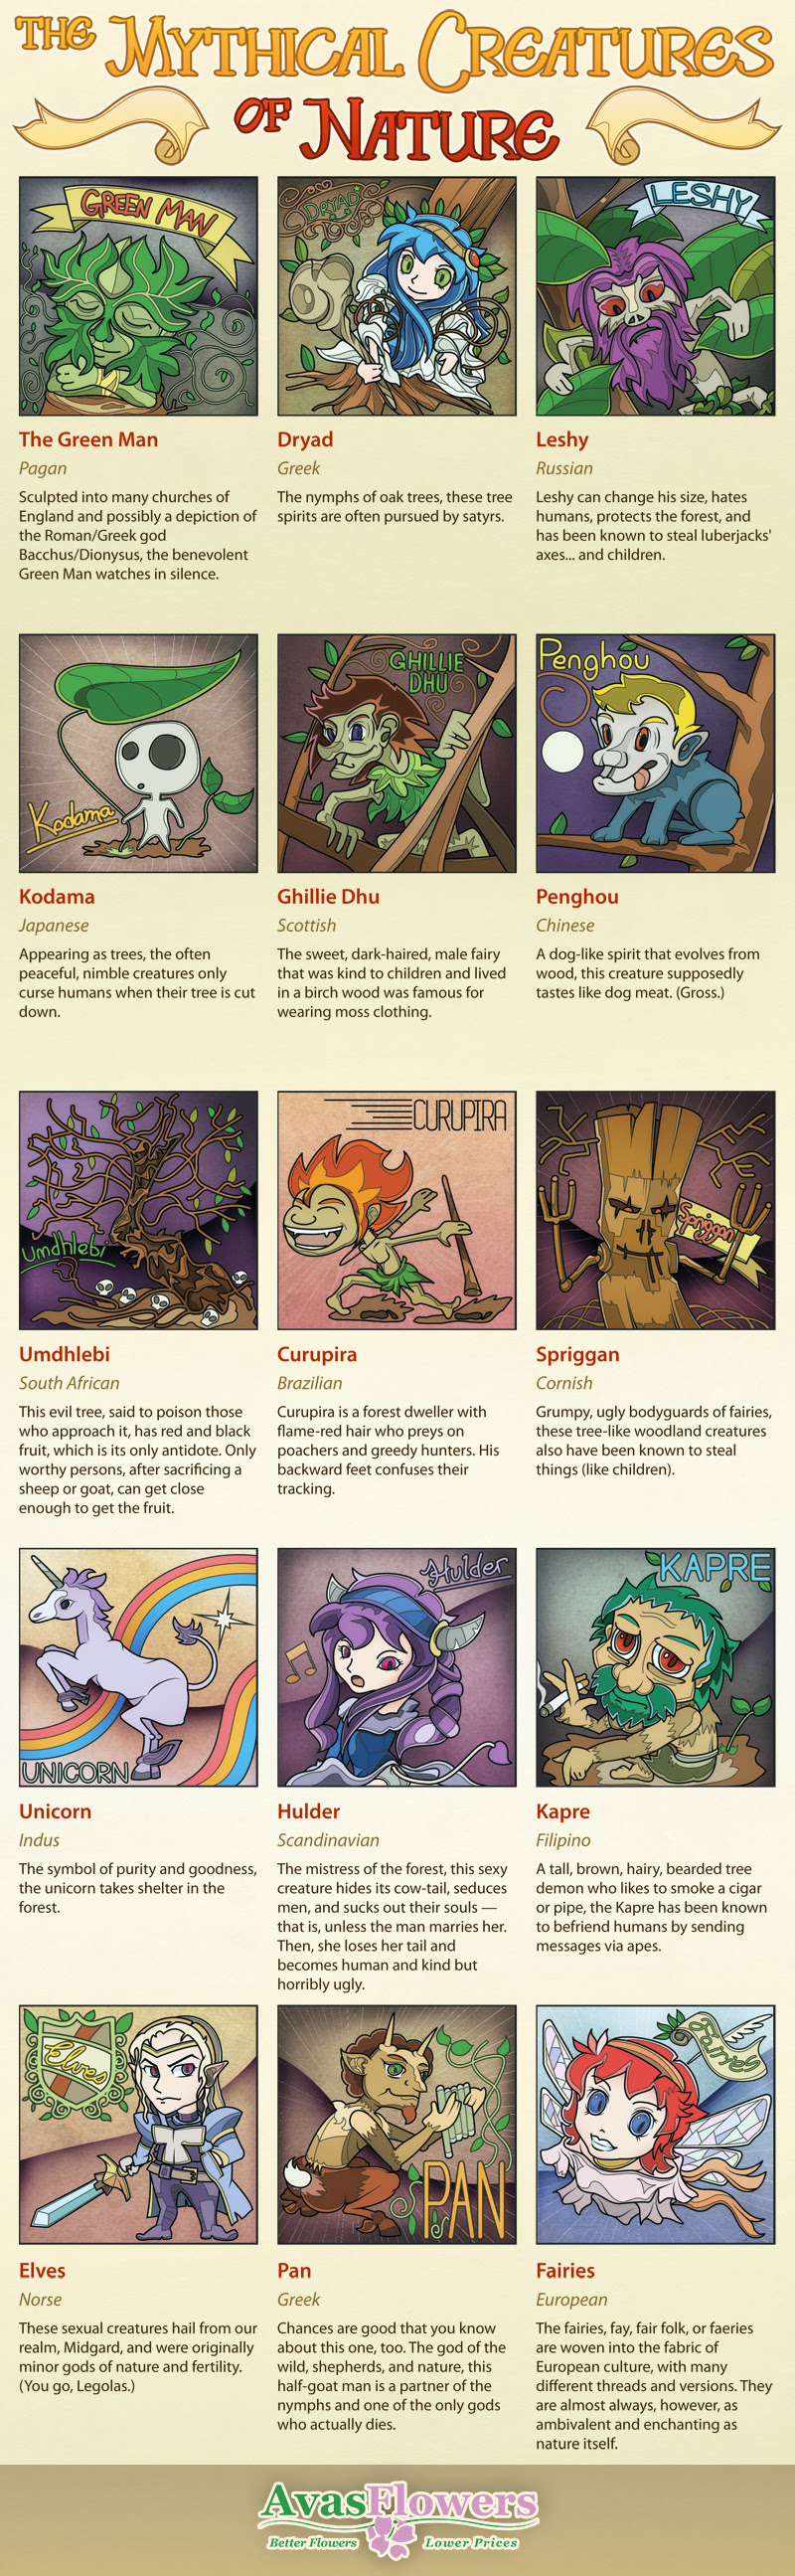 Mythical Creatures of Nature